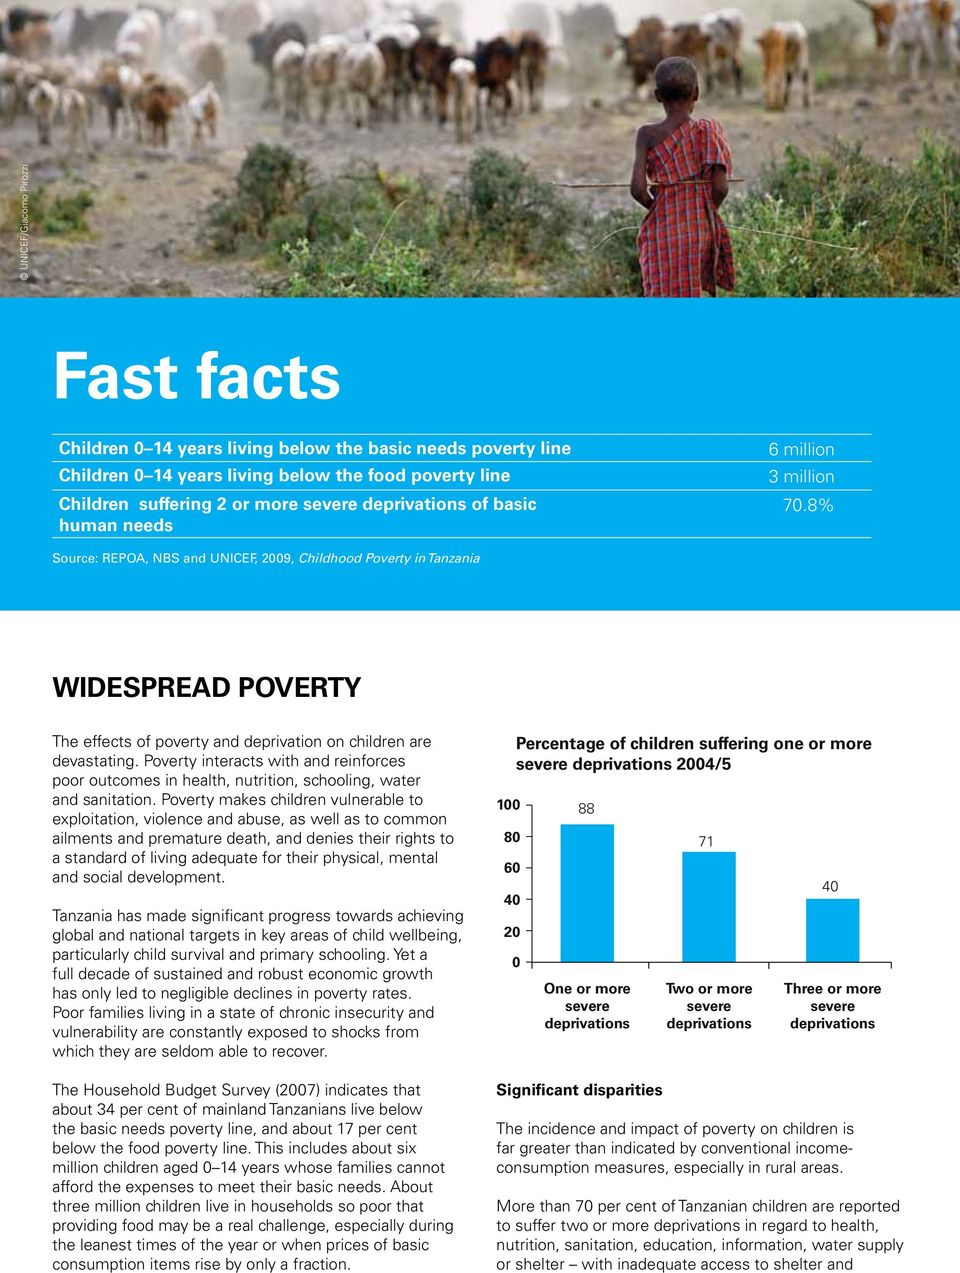 Poverty interacts with and reinforces poor outcomes in health, nutrition, schooling, water and sanitation.